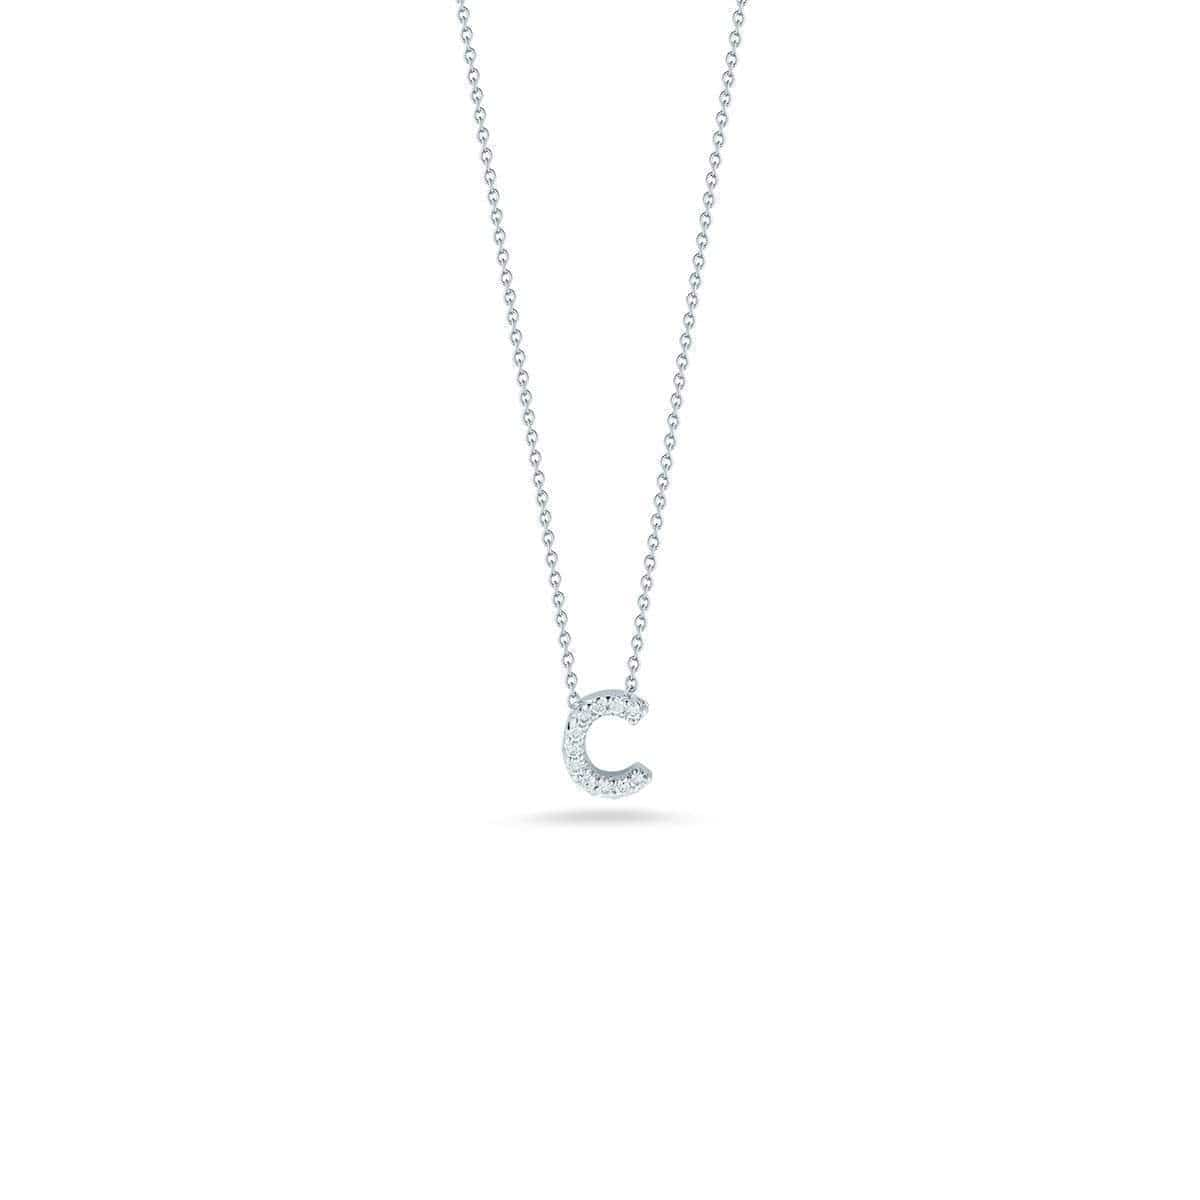 18k White Gold & Diamond Love Letter C Necklace - 001634AWCHXC-Roberto Coin-Renee Taylor Gallery